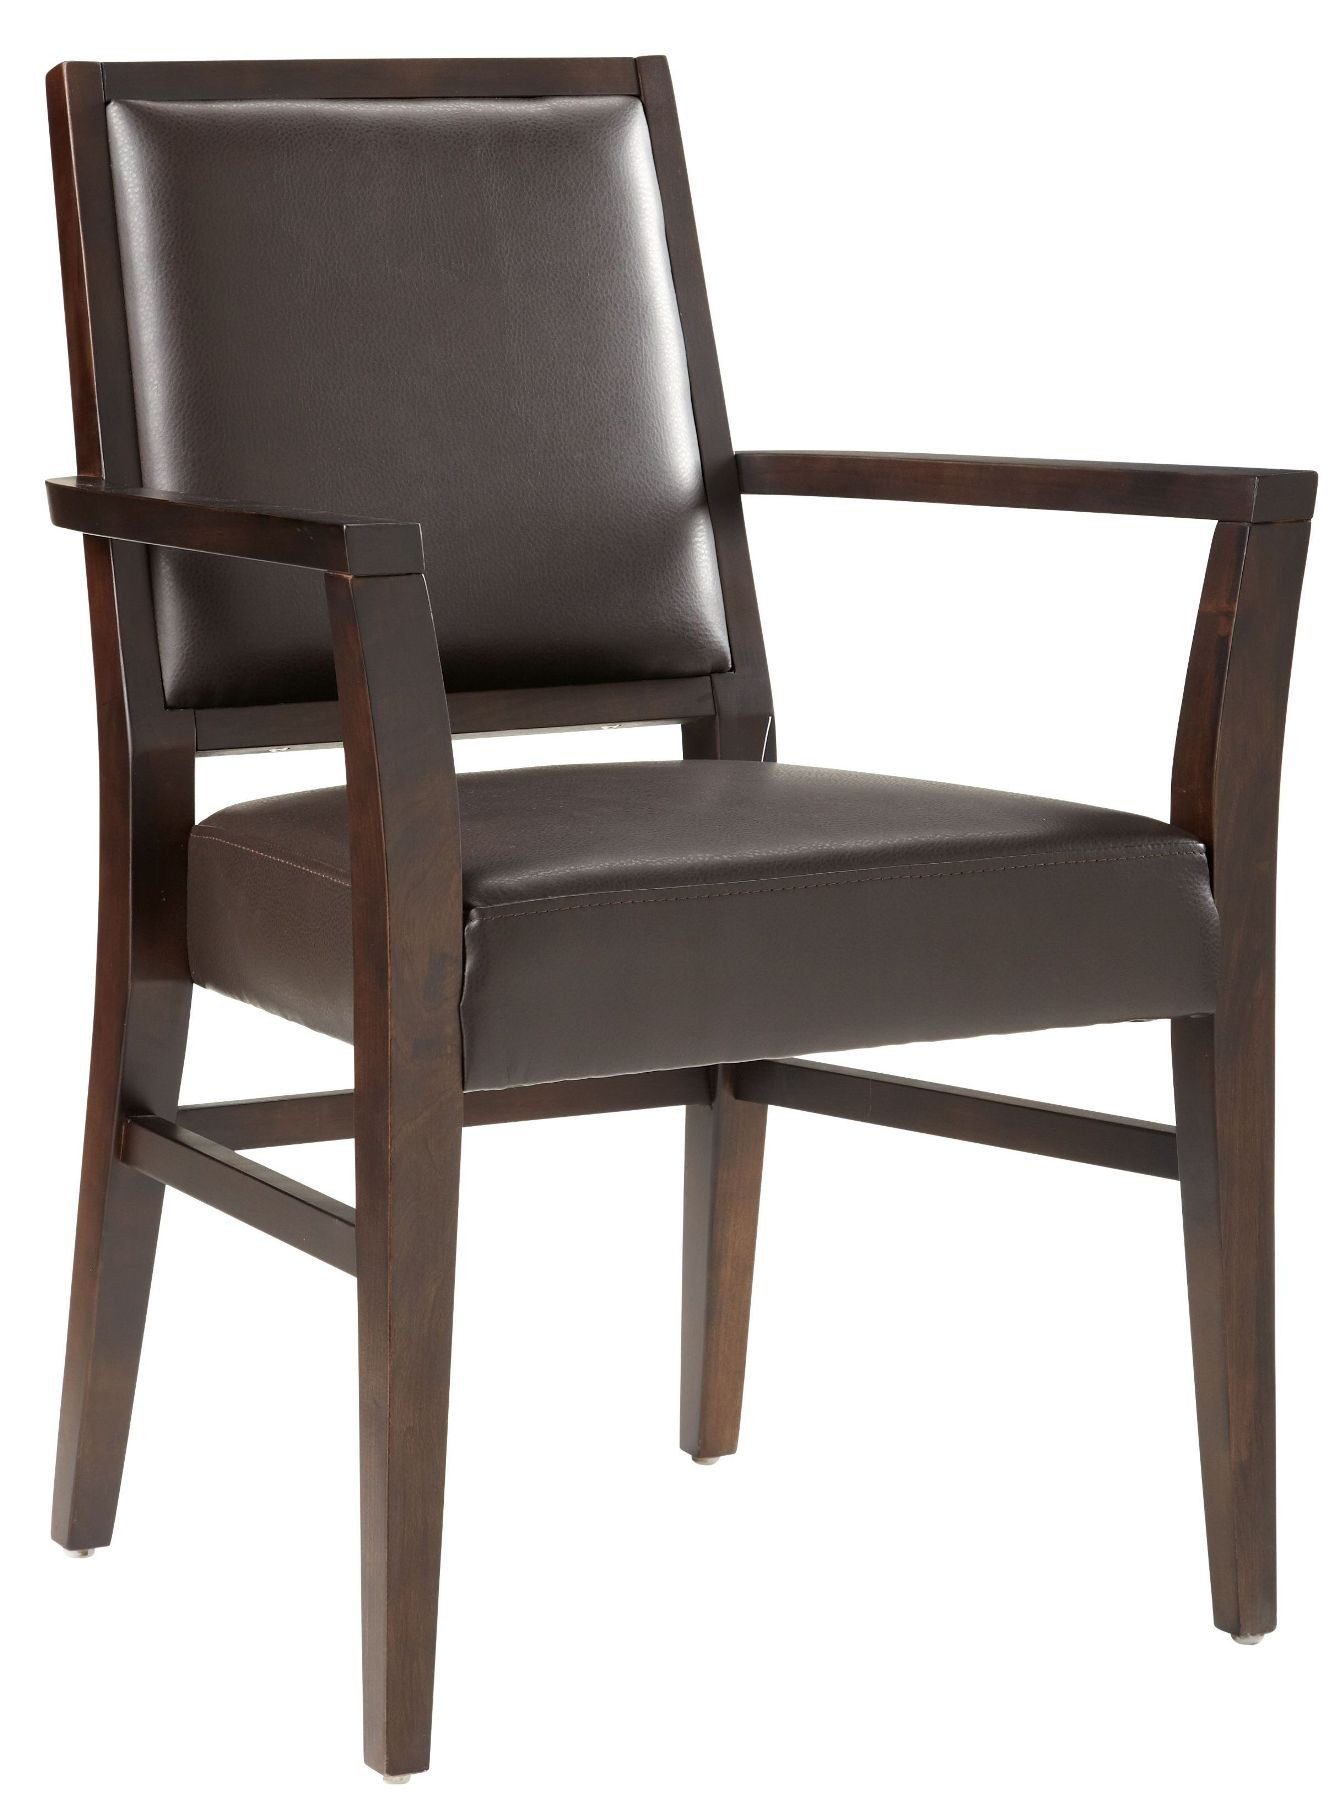 Citizen Brown Arm Chair From Sunpan 29051 Coleman